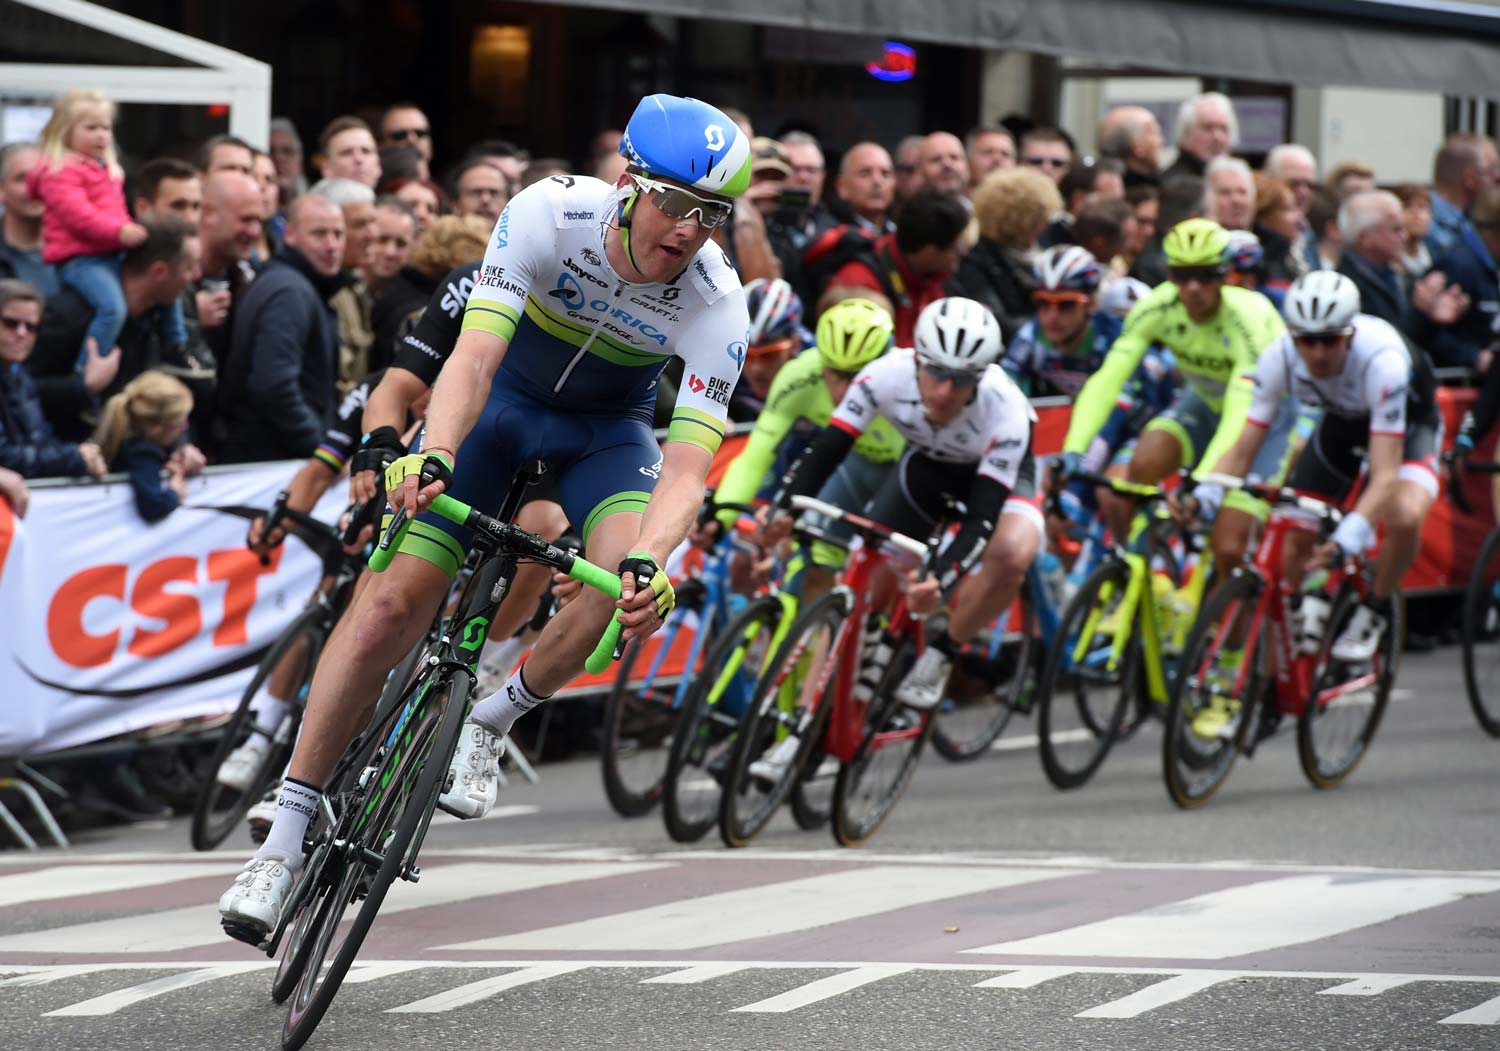 Luke Durbridge spent a solid stint at the front of the peloton on Sunday. He was one member of a committed Orica-GreenEdge team that was racing for... ah, two leaders. Photo: Graham Watson